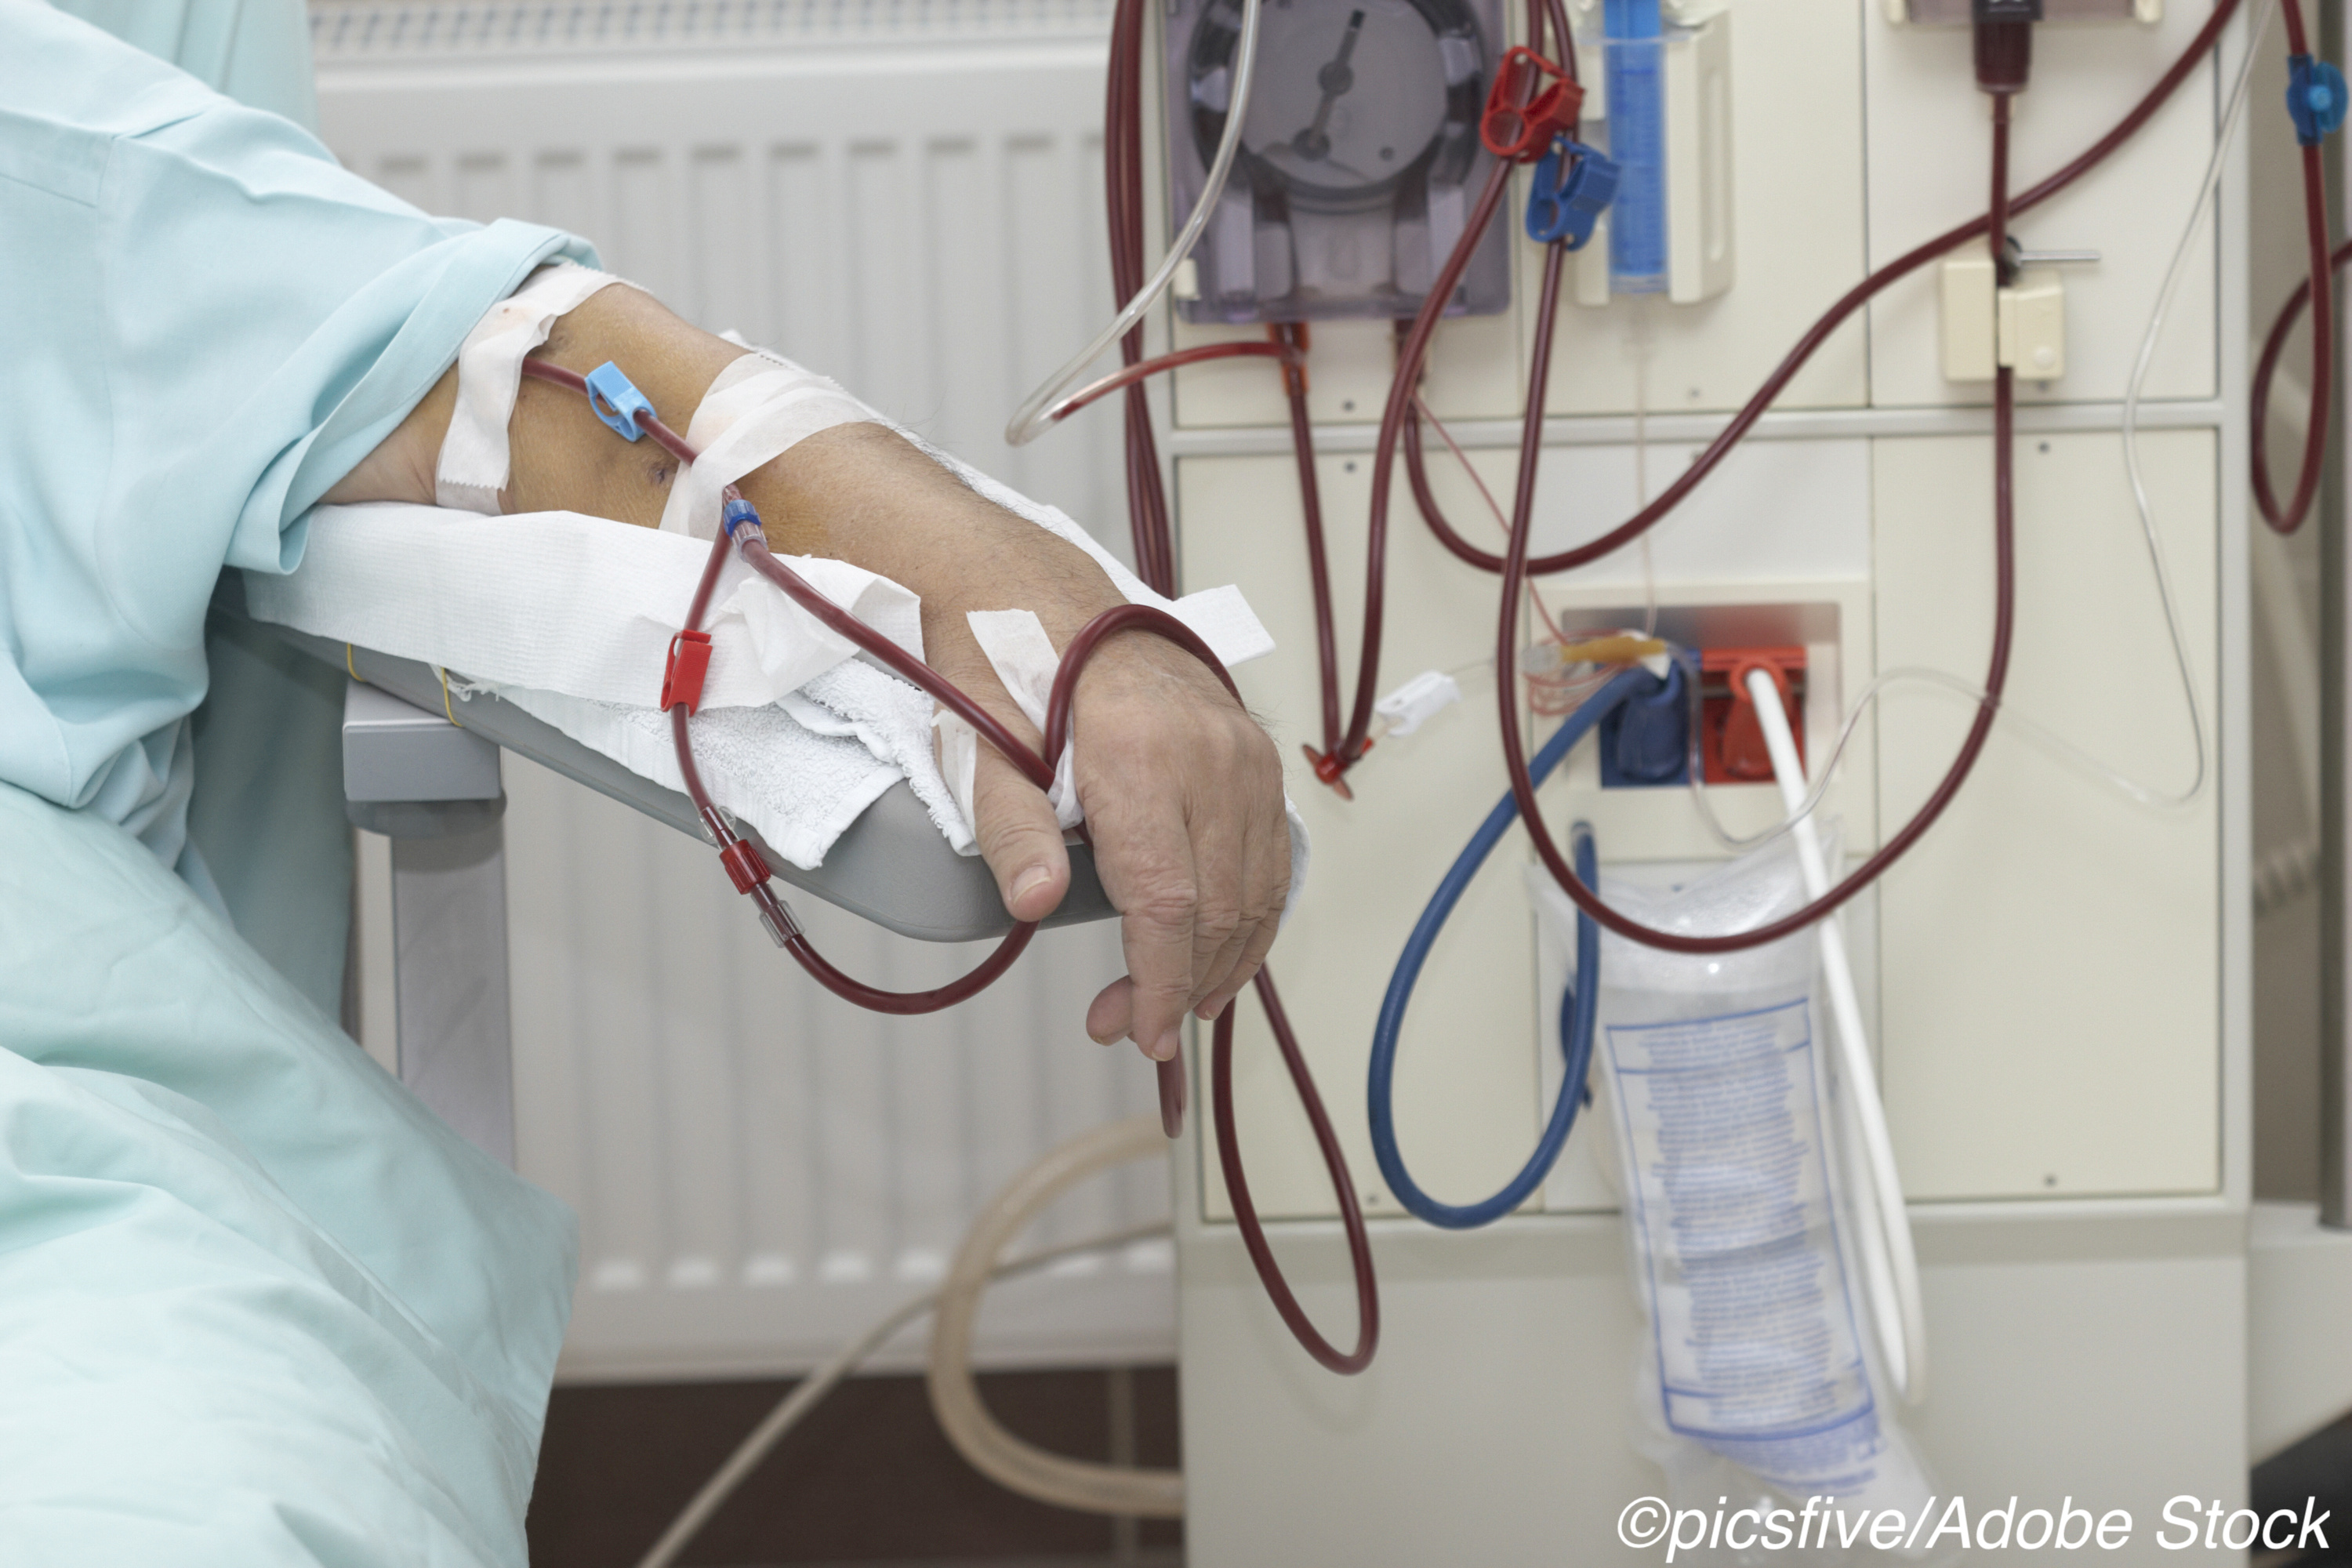 CMS Moves to Improve Access to At-Home Dialysis Options